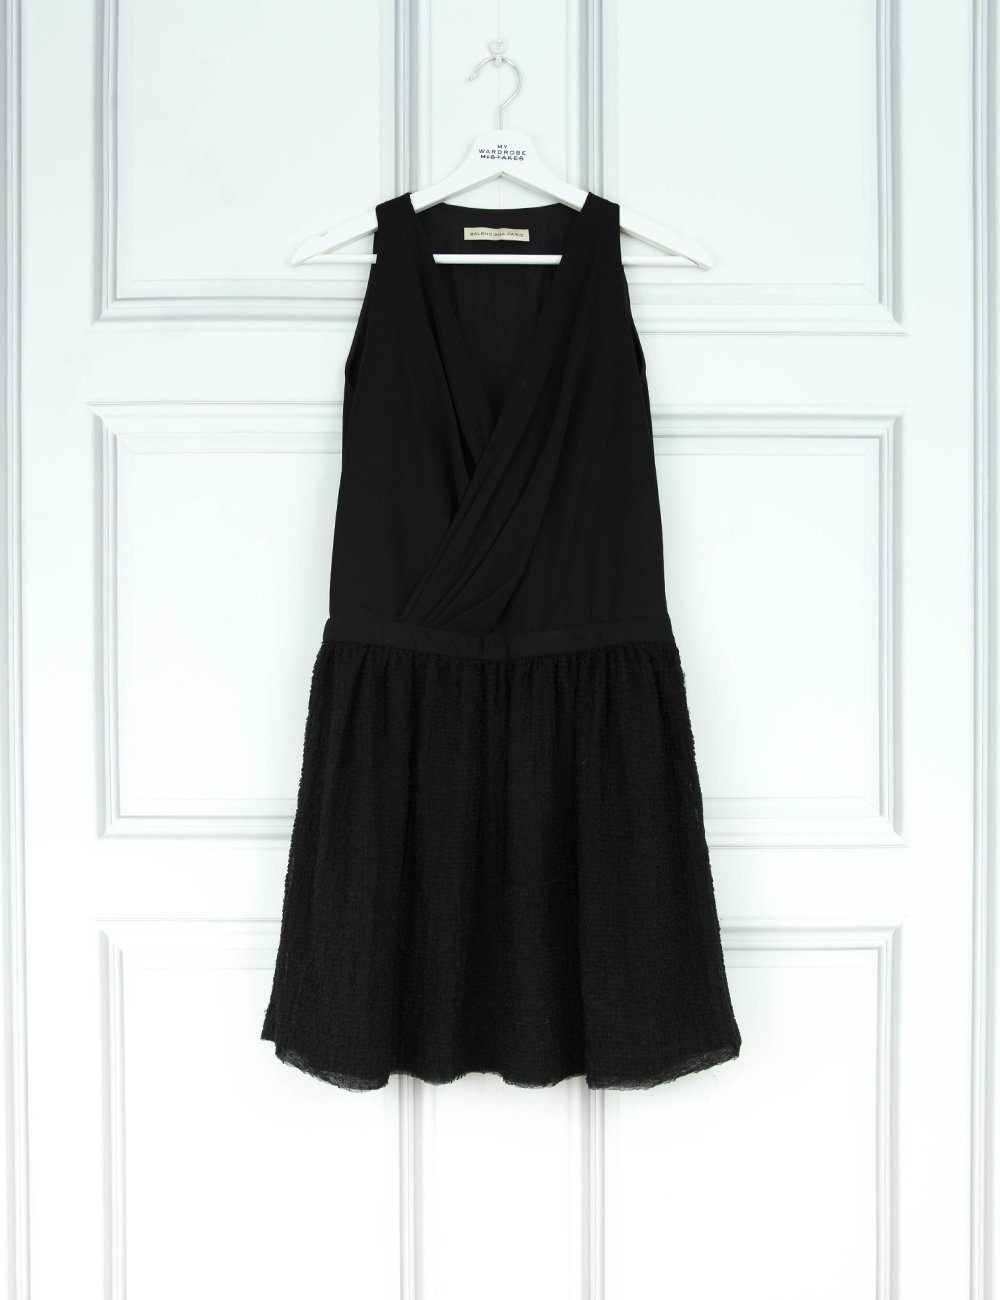 BALENCIAGA CLOTHING Delicate a-line dress with tulle